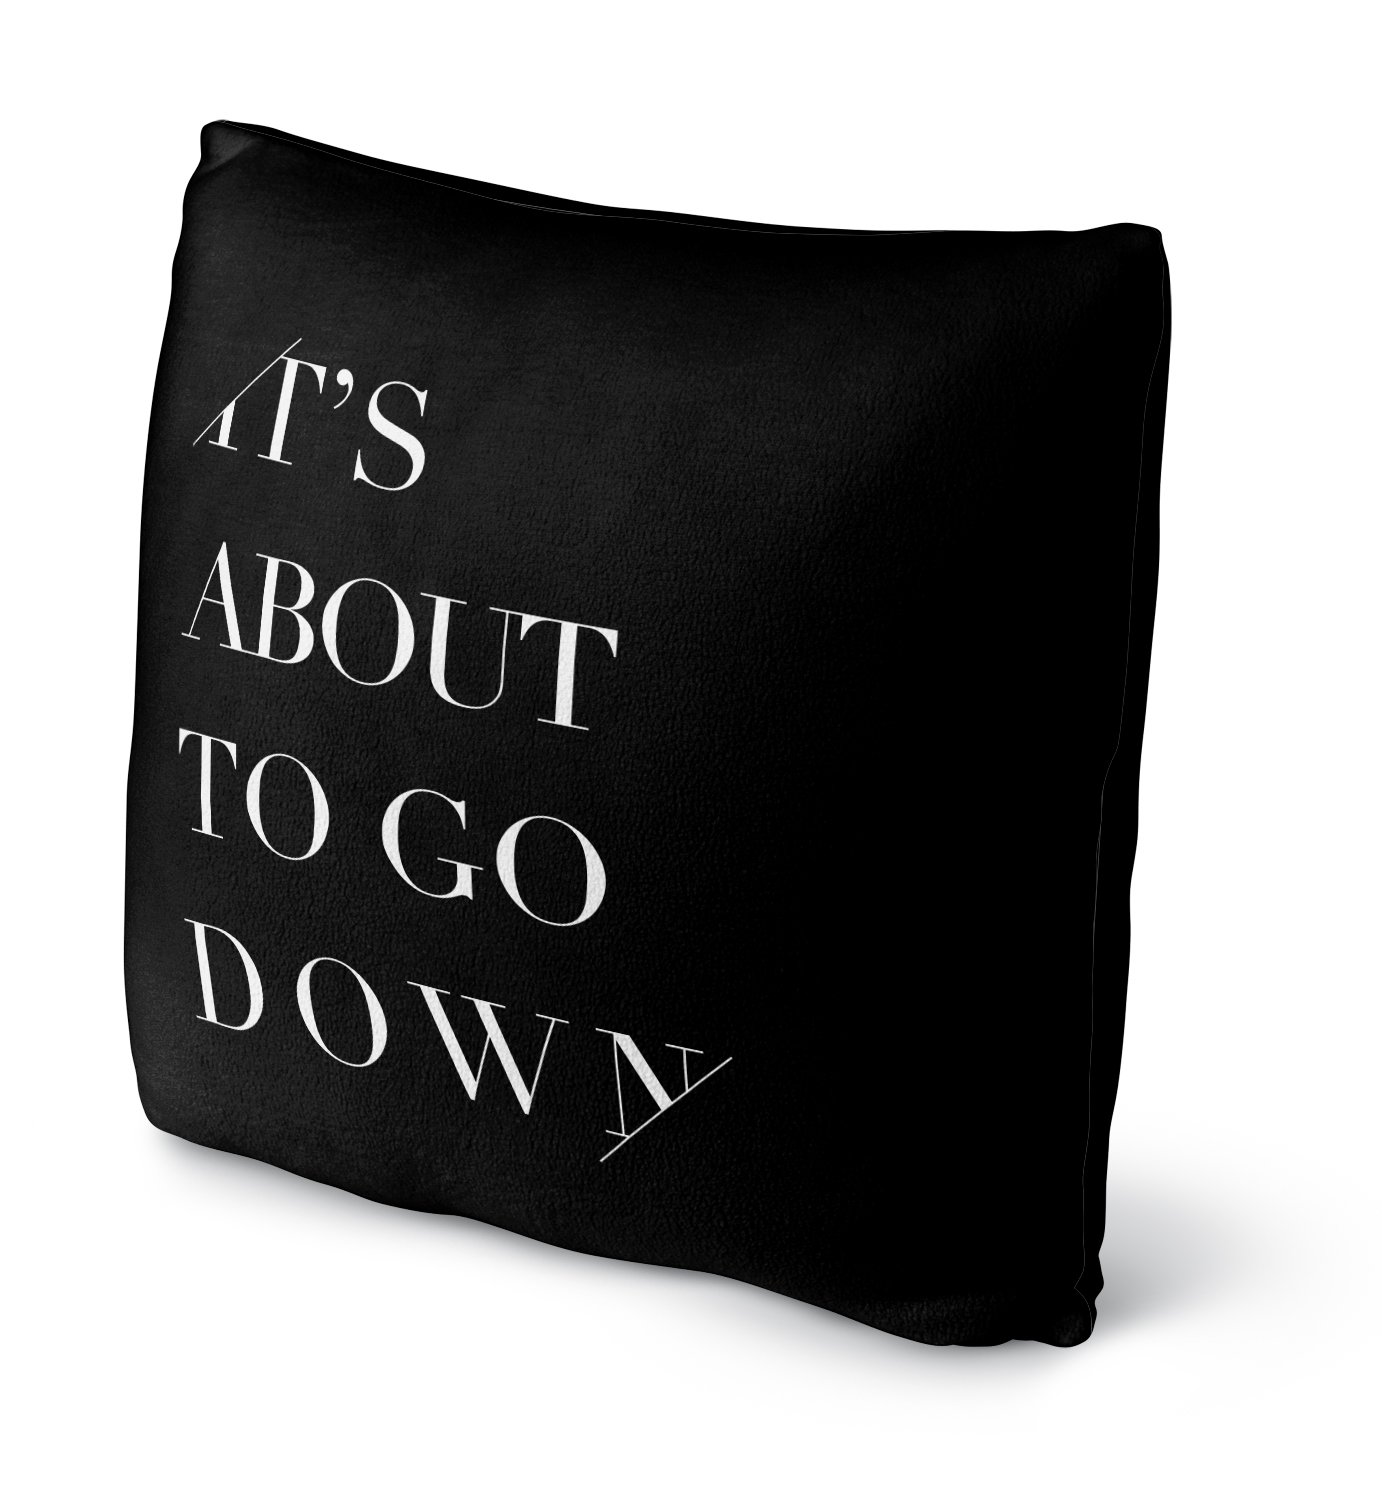 SCRAVC069FBS16 Size: 16x16x4 - KAVKA Designs Its About To Go Down Fleece Throw Pillow, Black - INSPO Collection